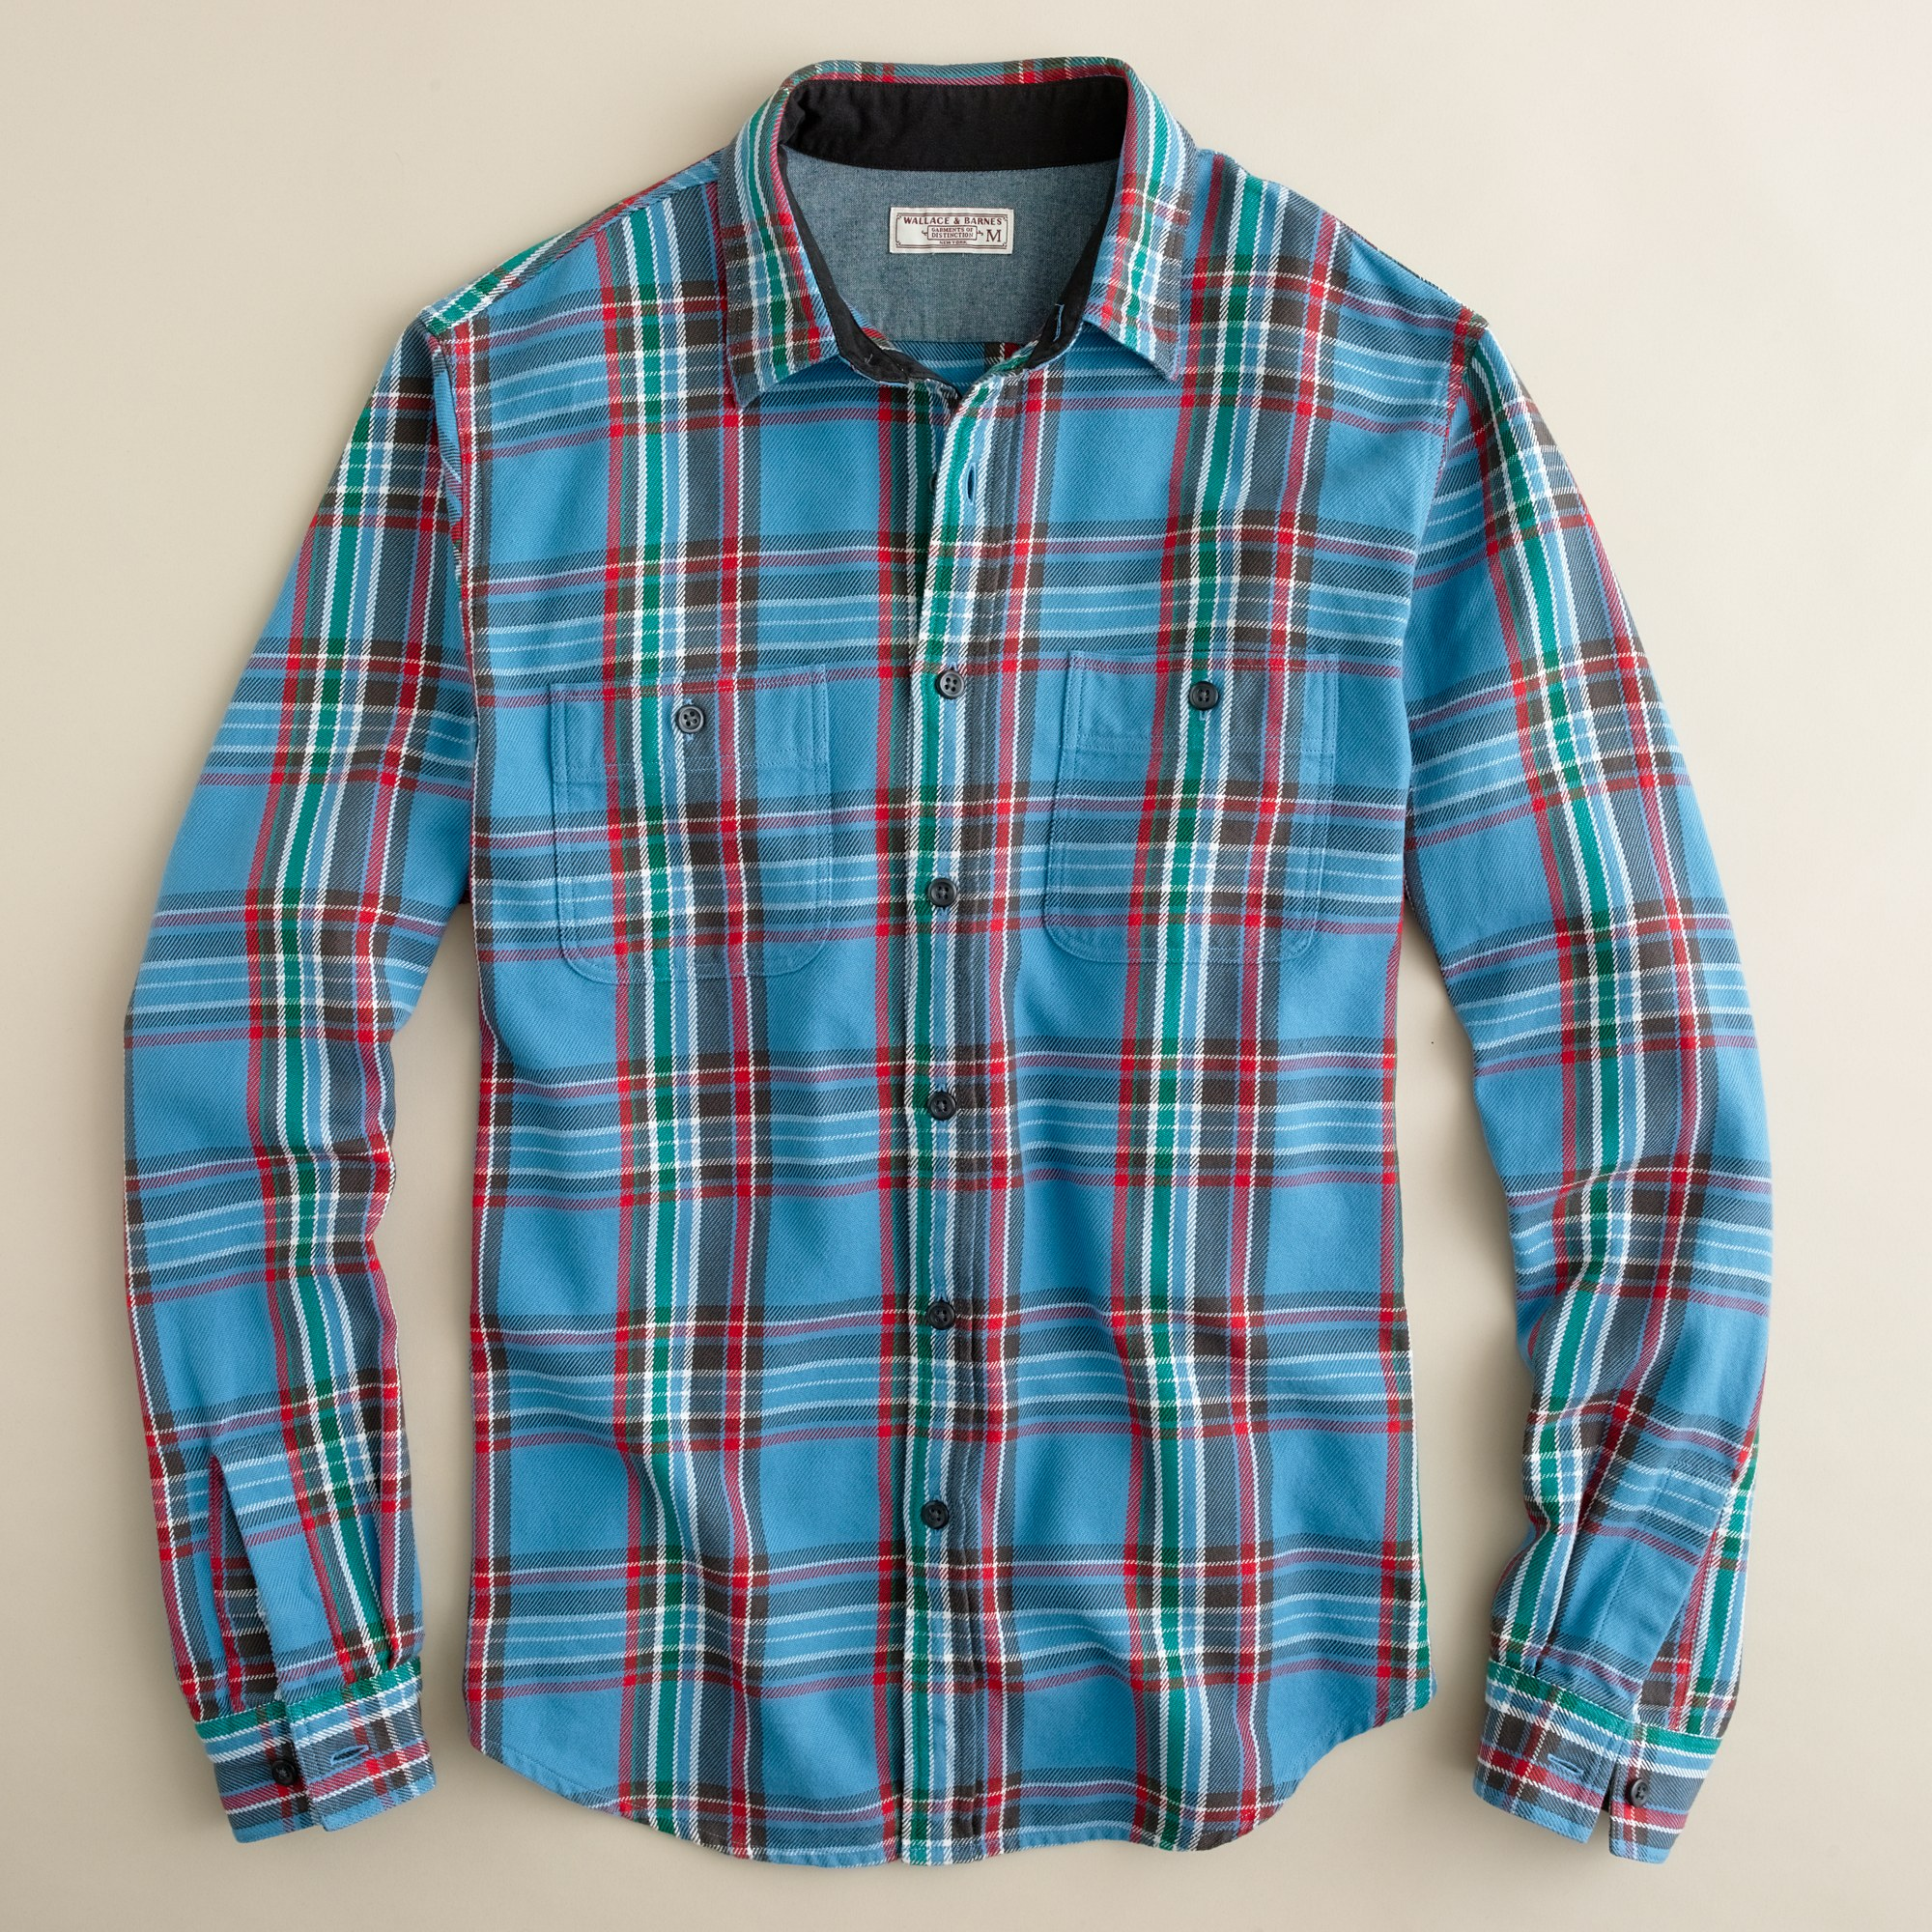 Wallace Barnes Heavyweight Flannel Shirt In